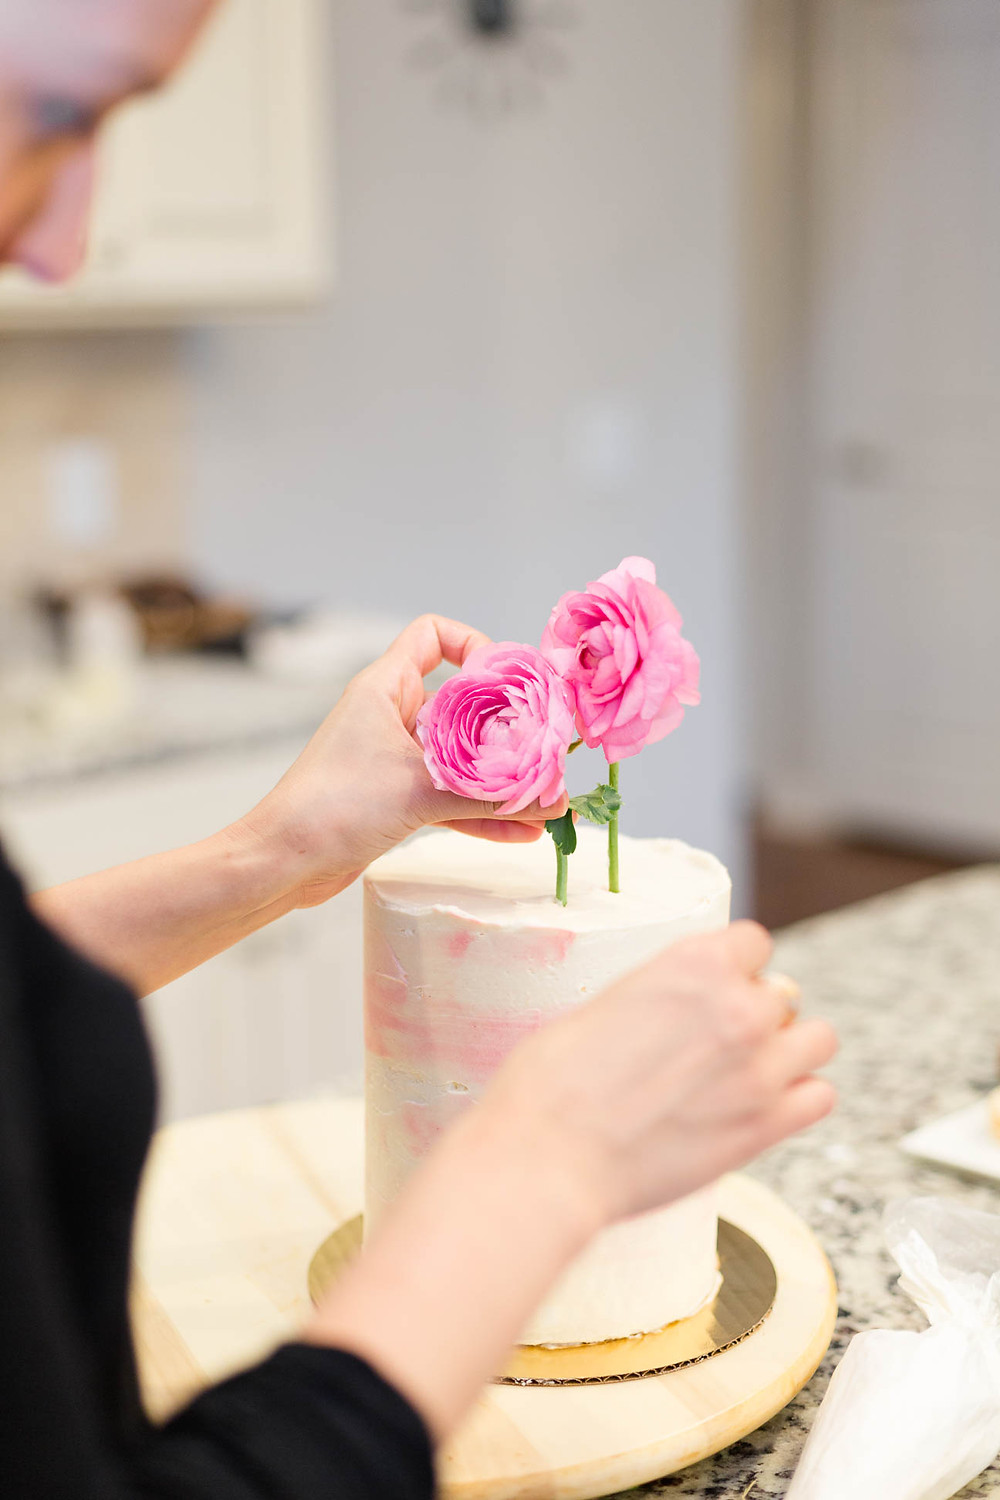 pink florals used to decorate a mini wedding cake with watercolor icing